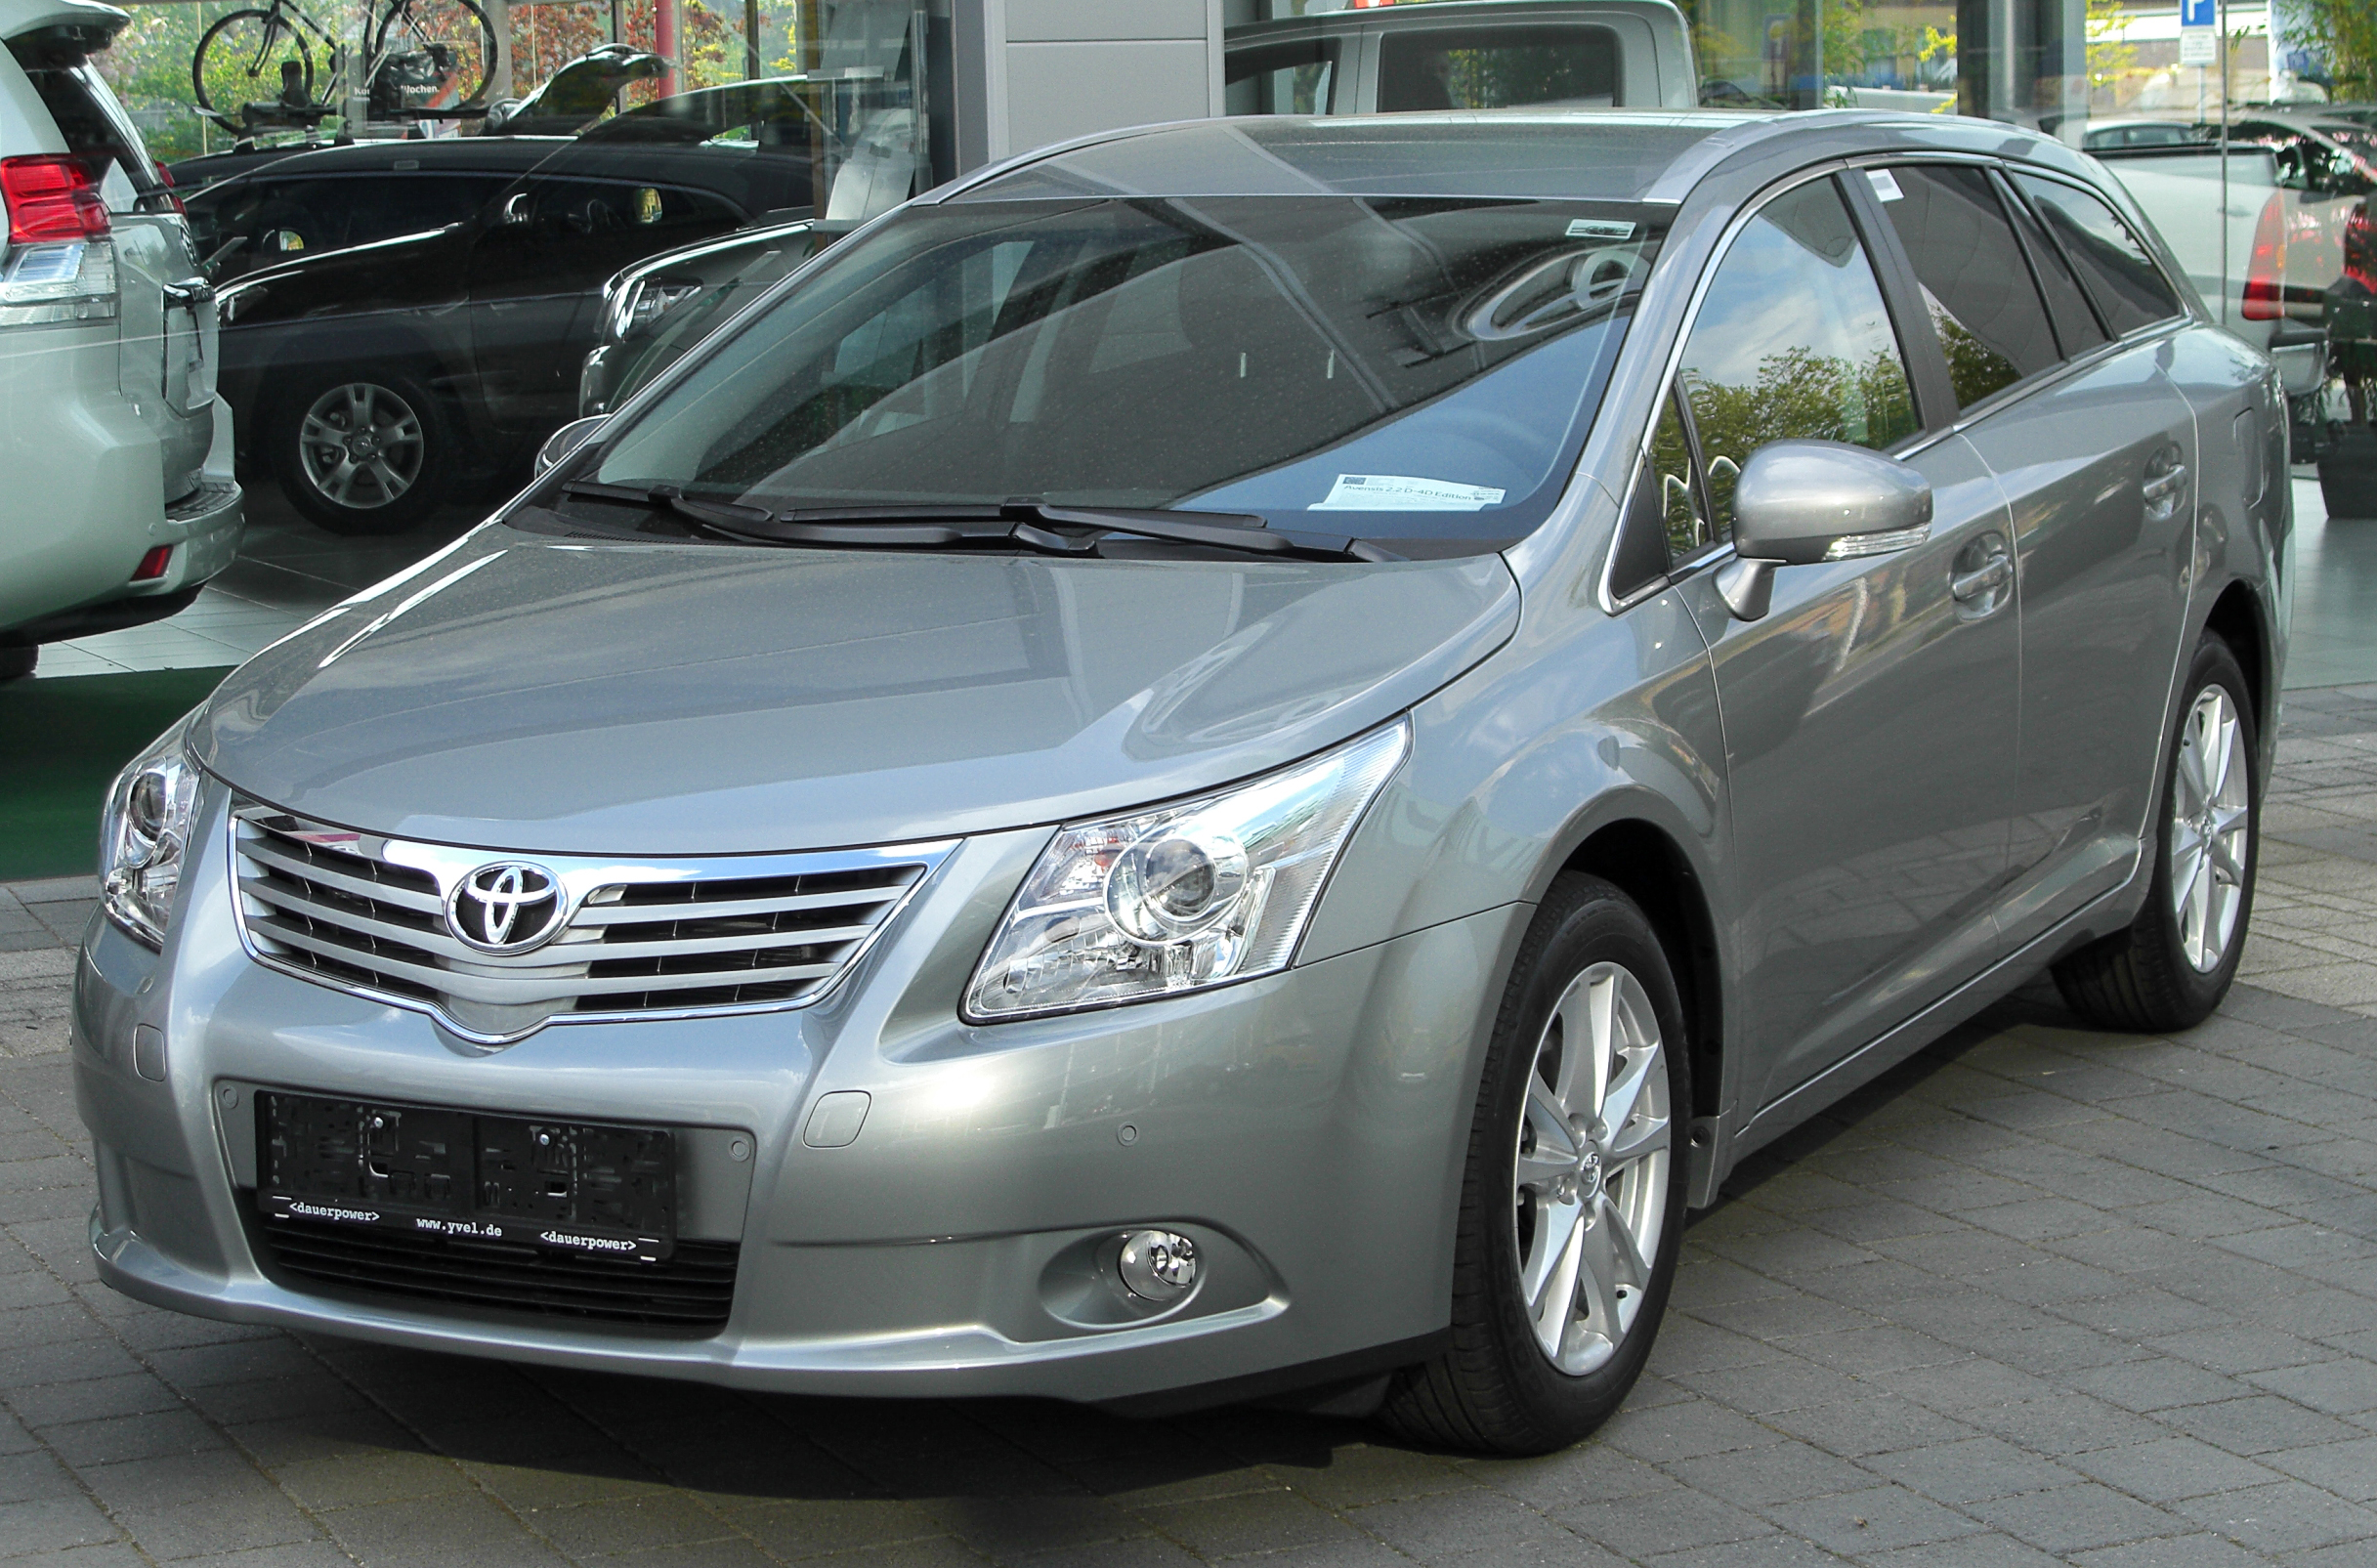 Toyota 2.2 photo - 8